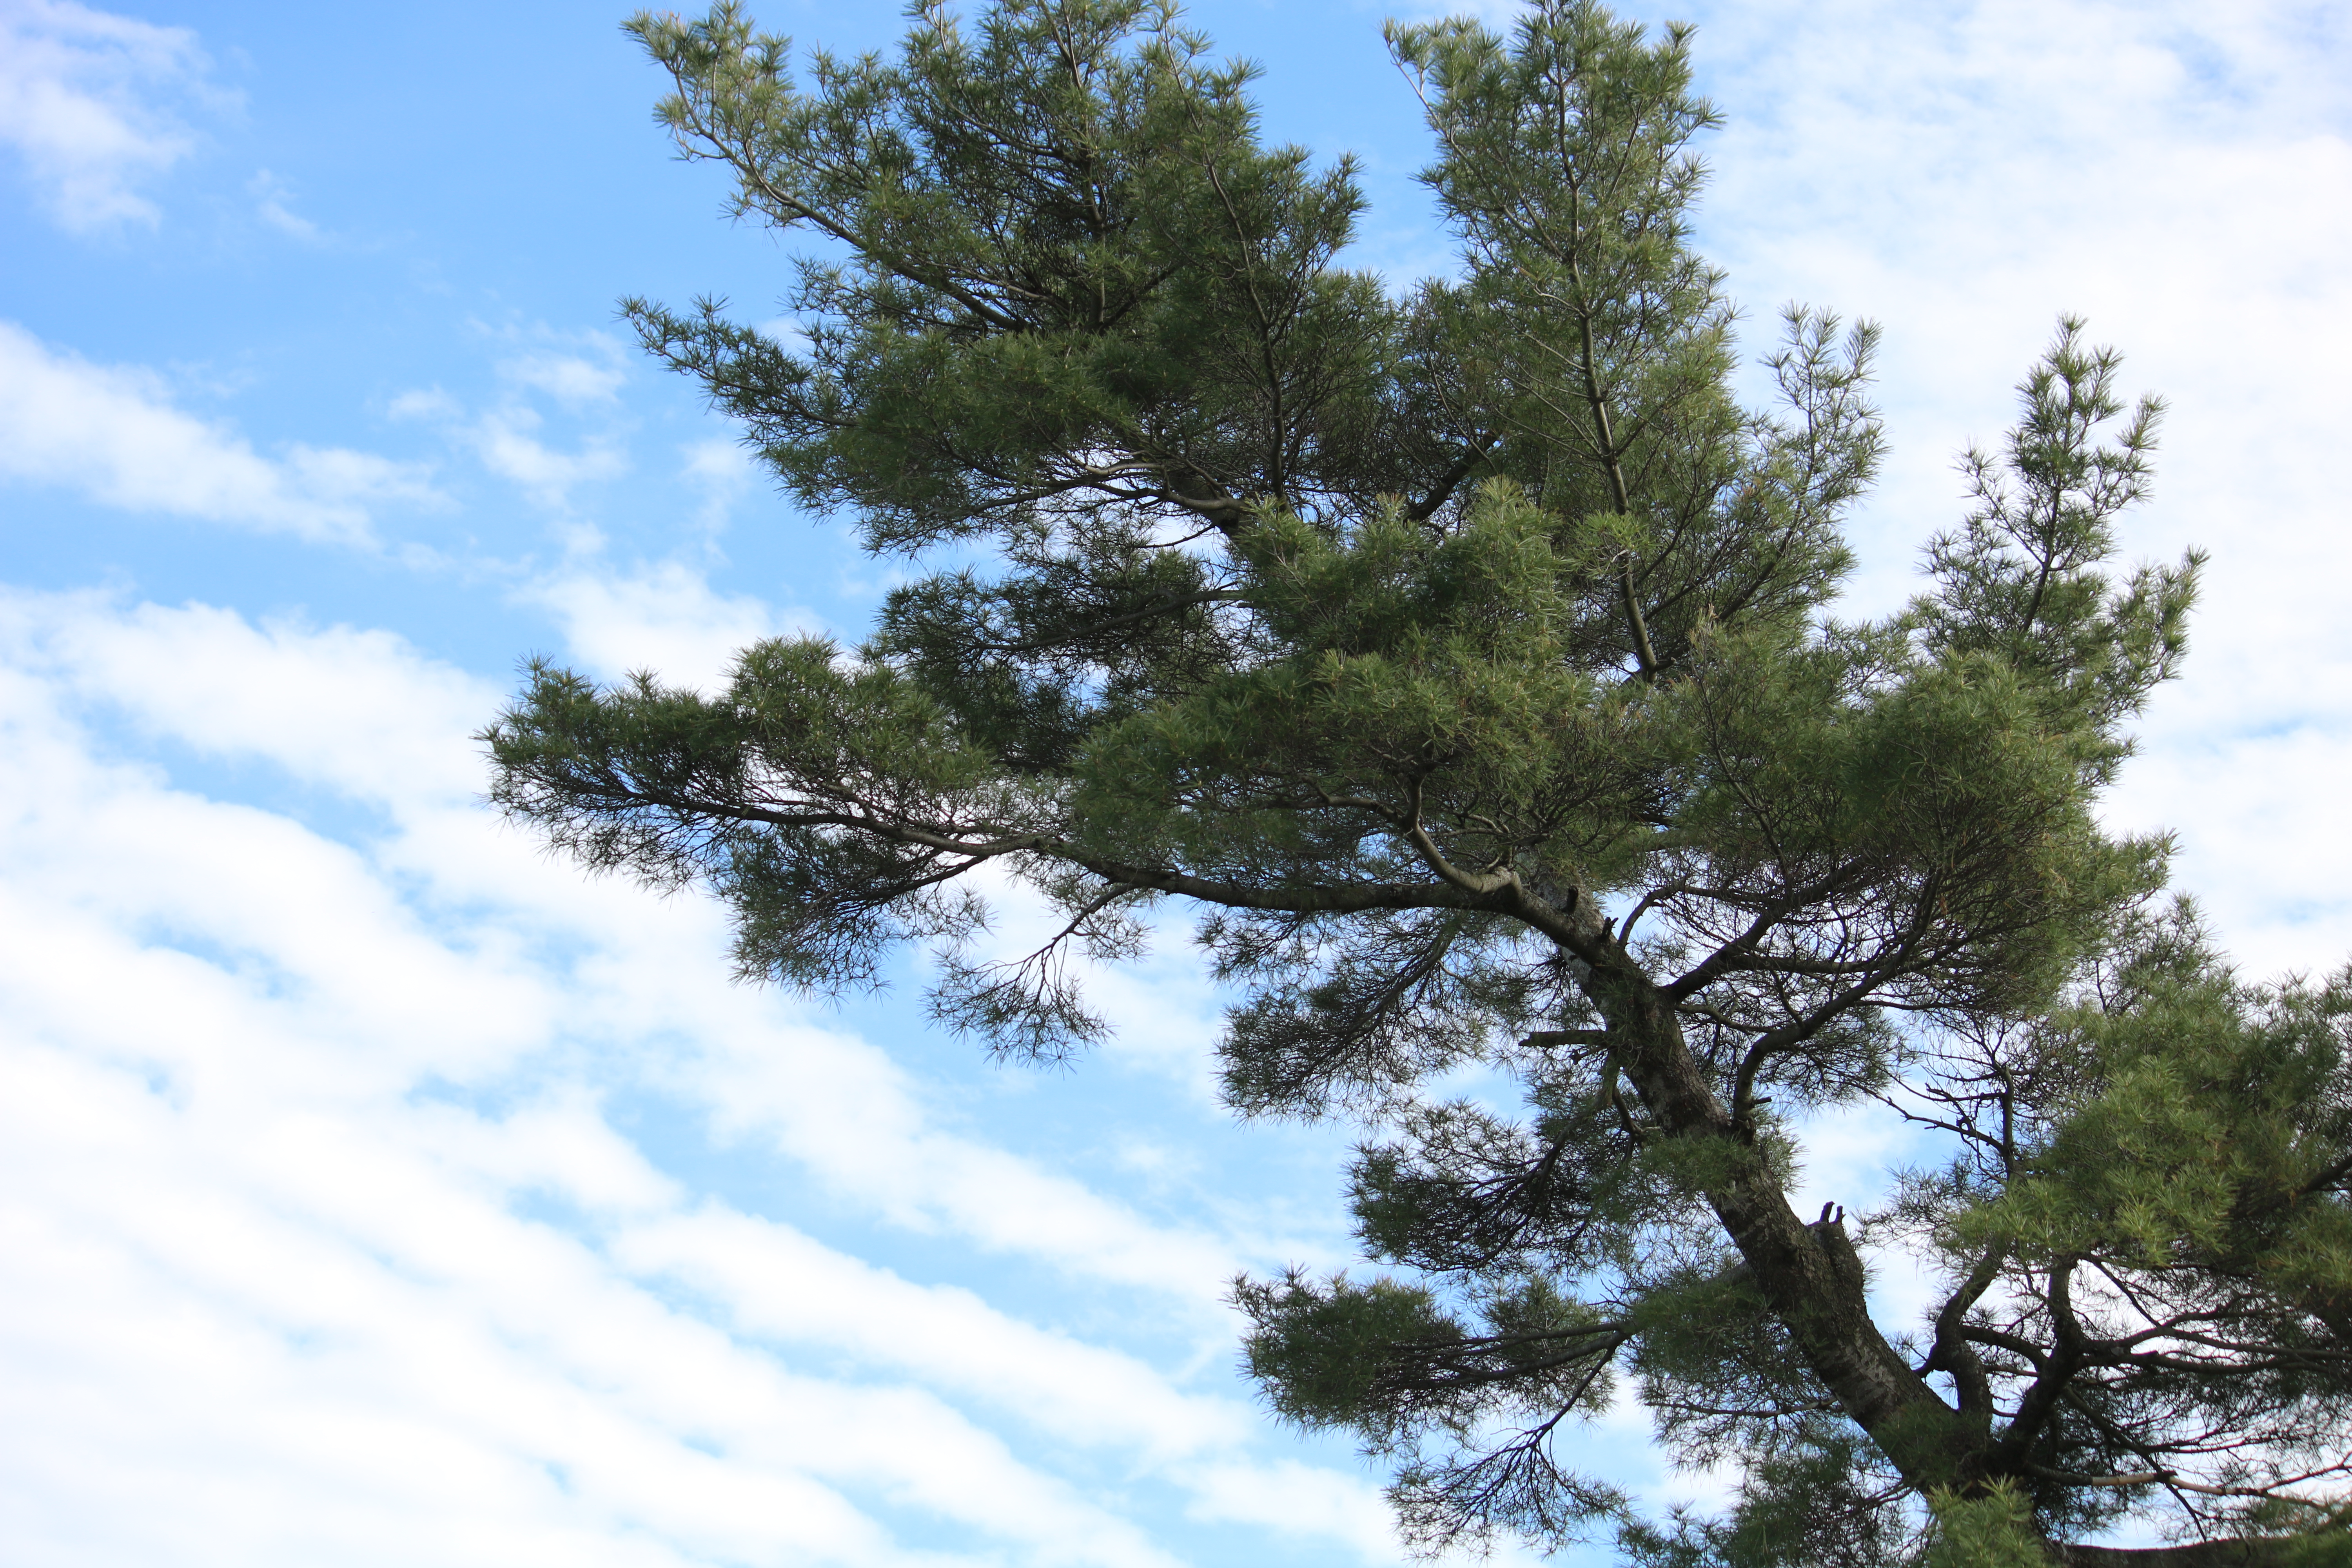 photo of blue sky with white ridged (washboard) clouds and a large crooked pine tree.